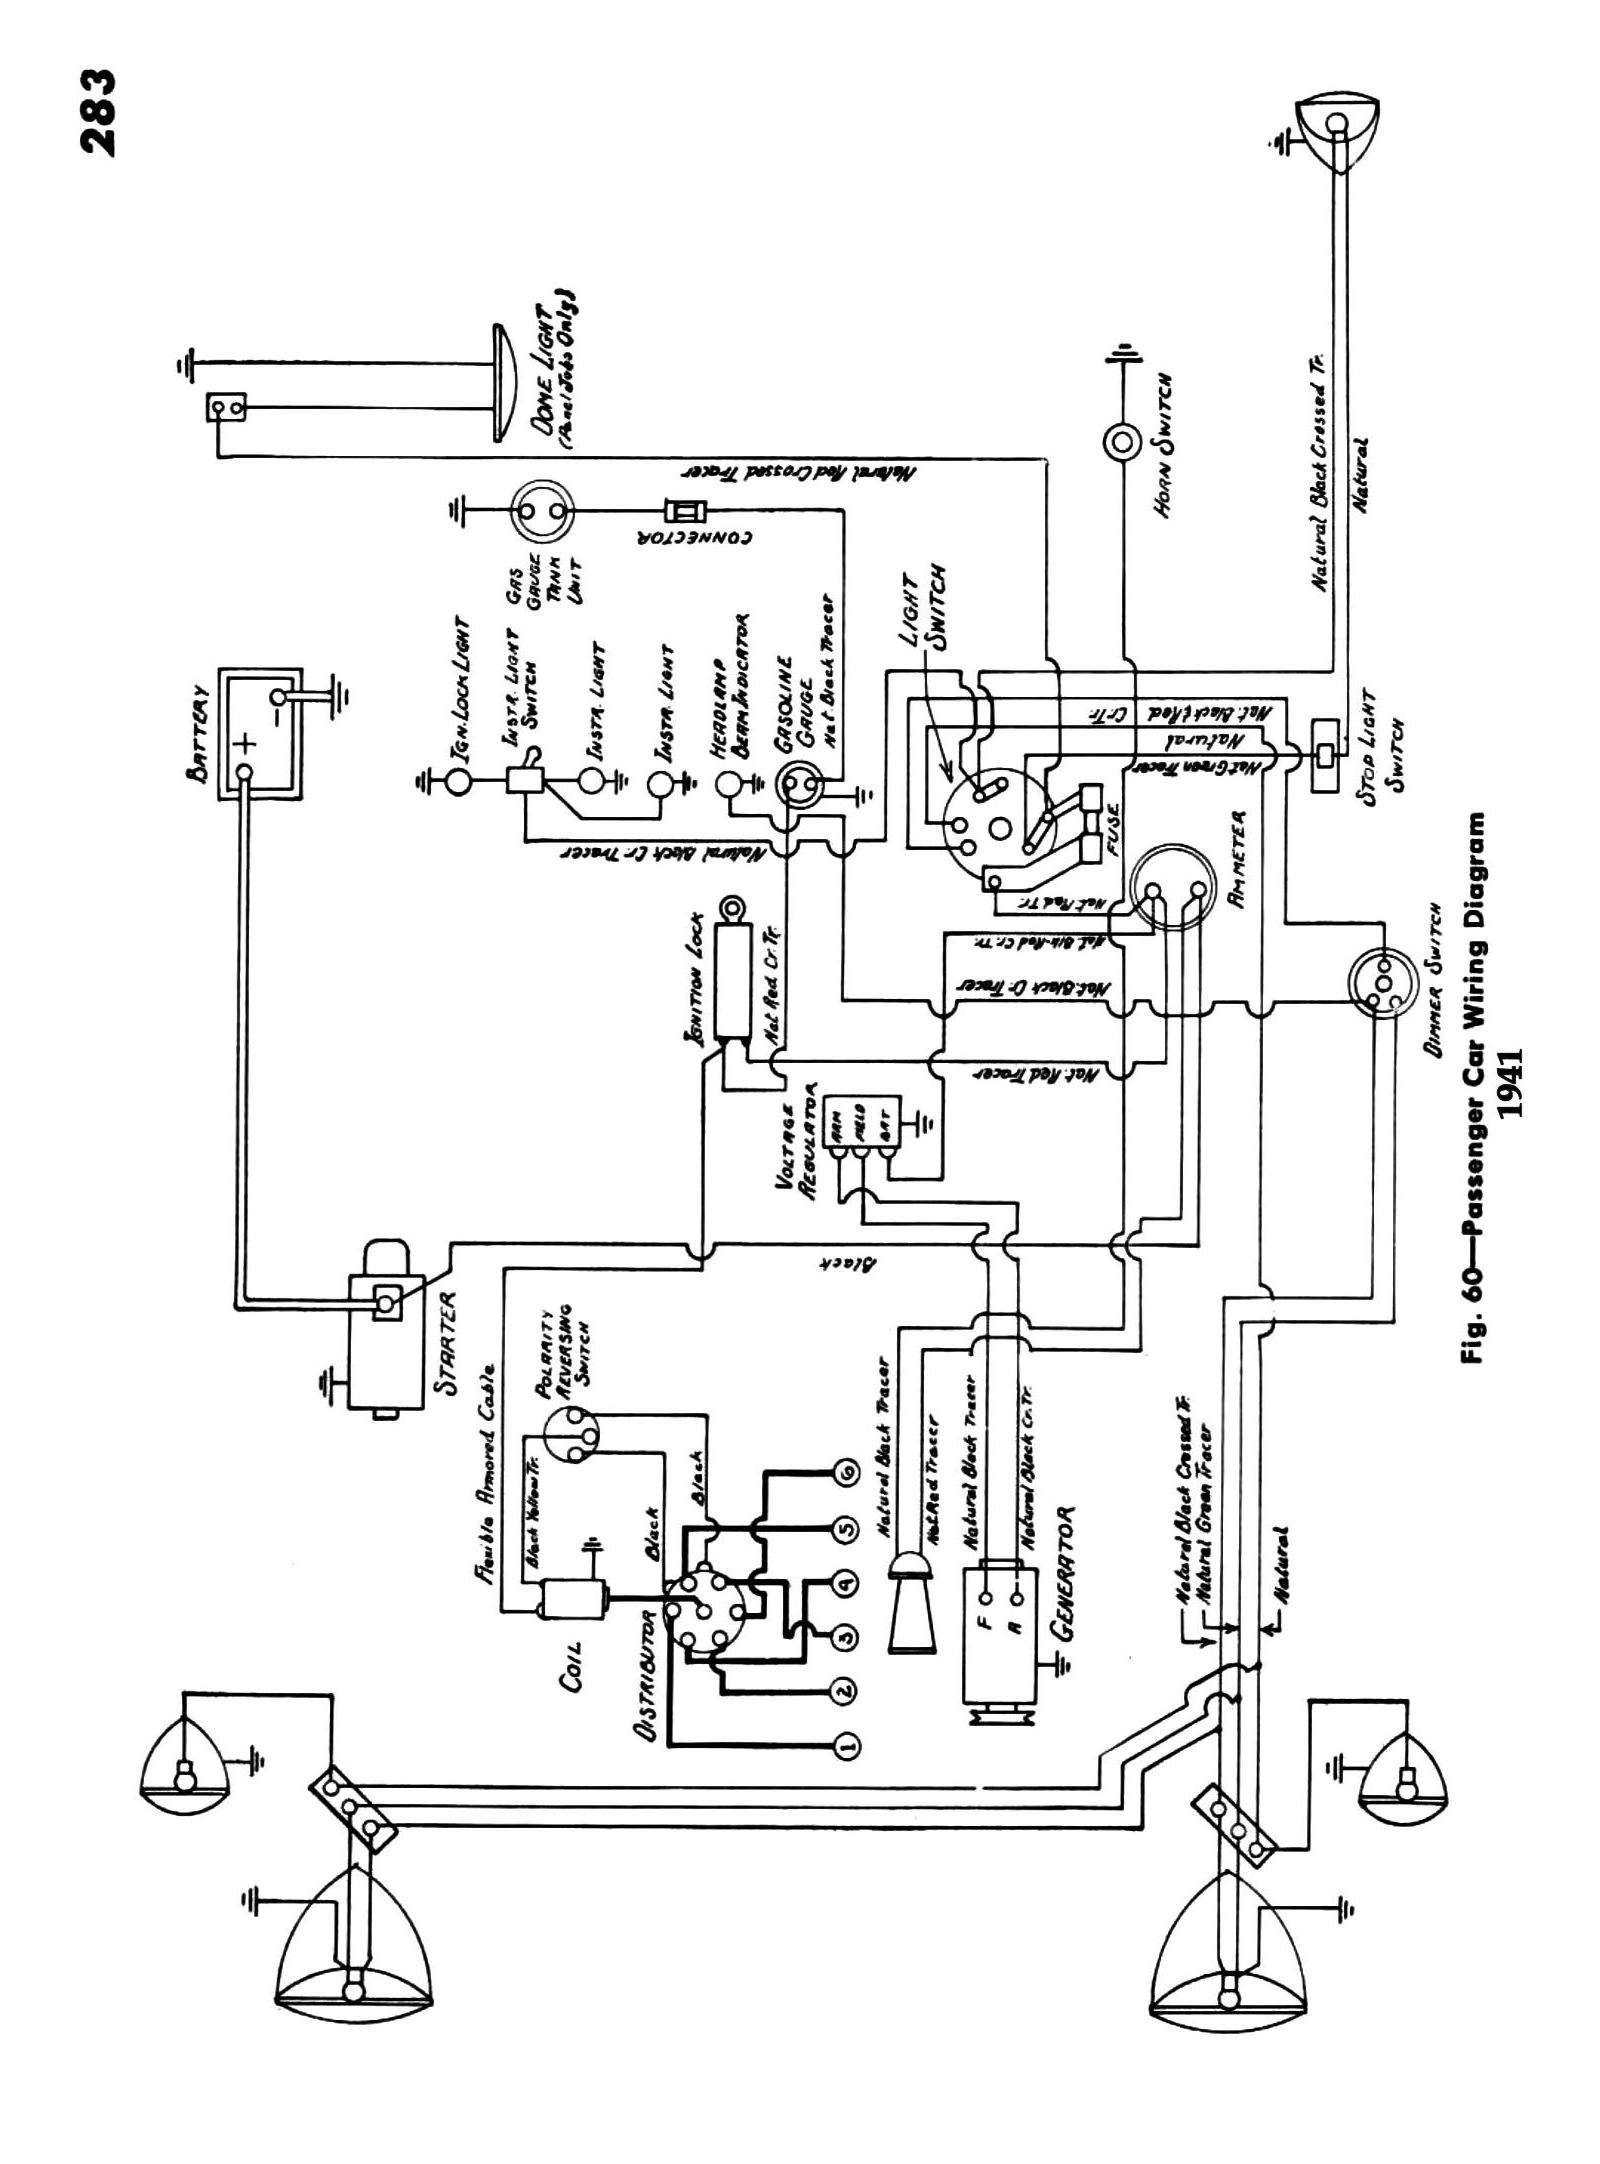 hight resolution of 1947 ford wiring diagram p9 schwabenschamanen de u2022wiring diagram for 1950 chevy truck wiring diagram